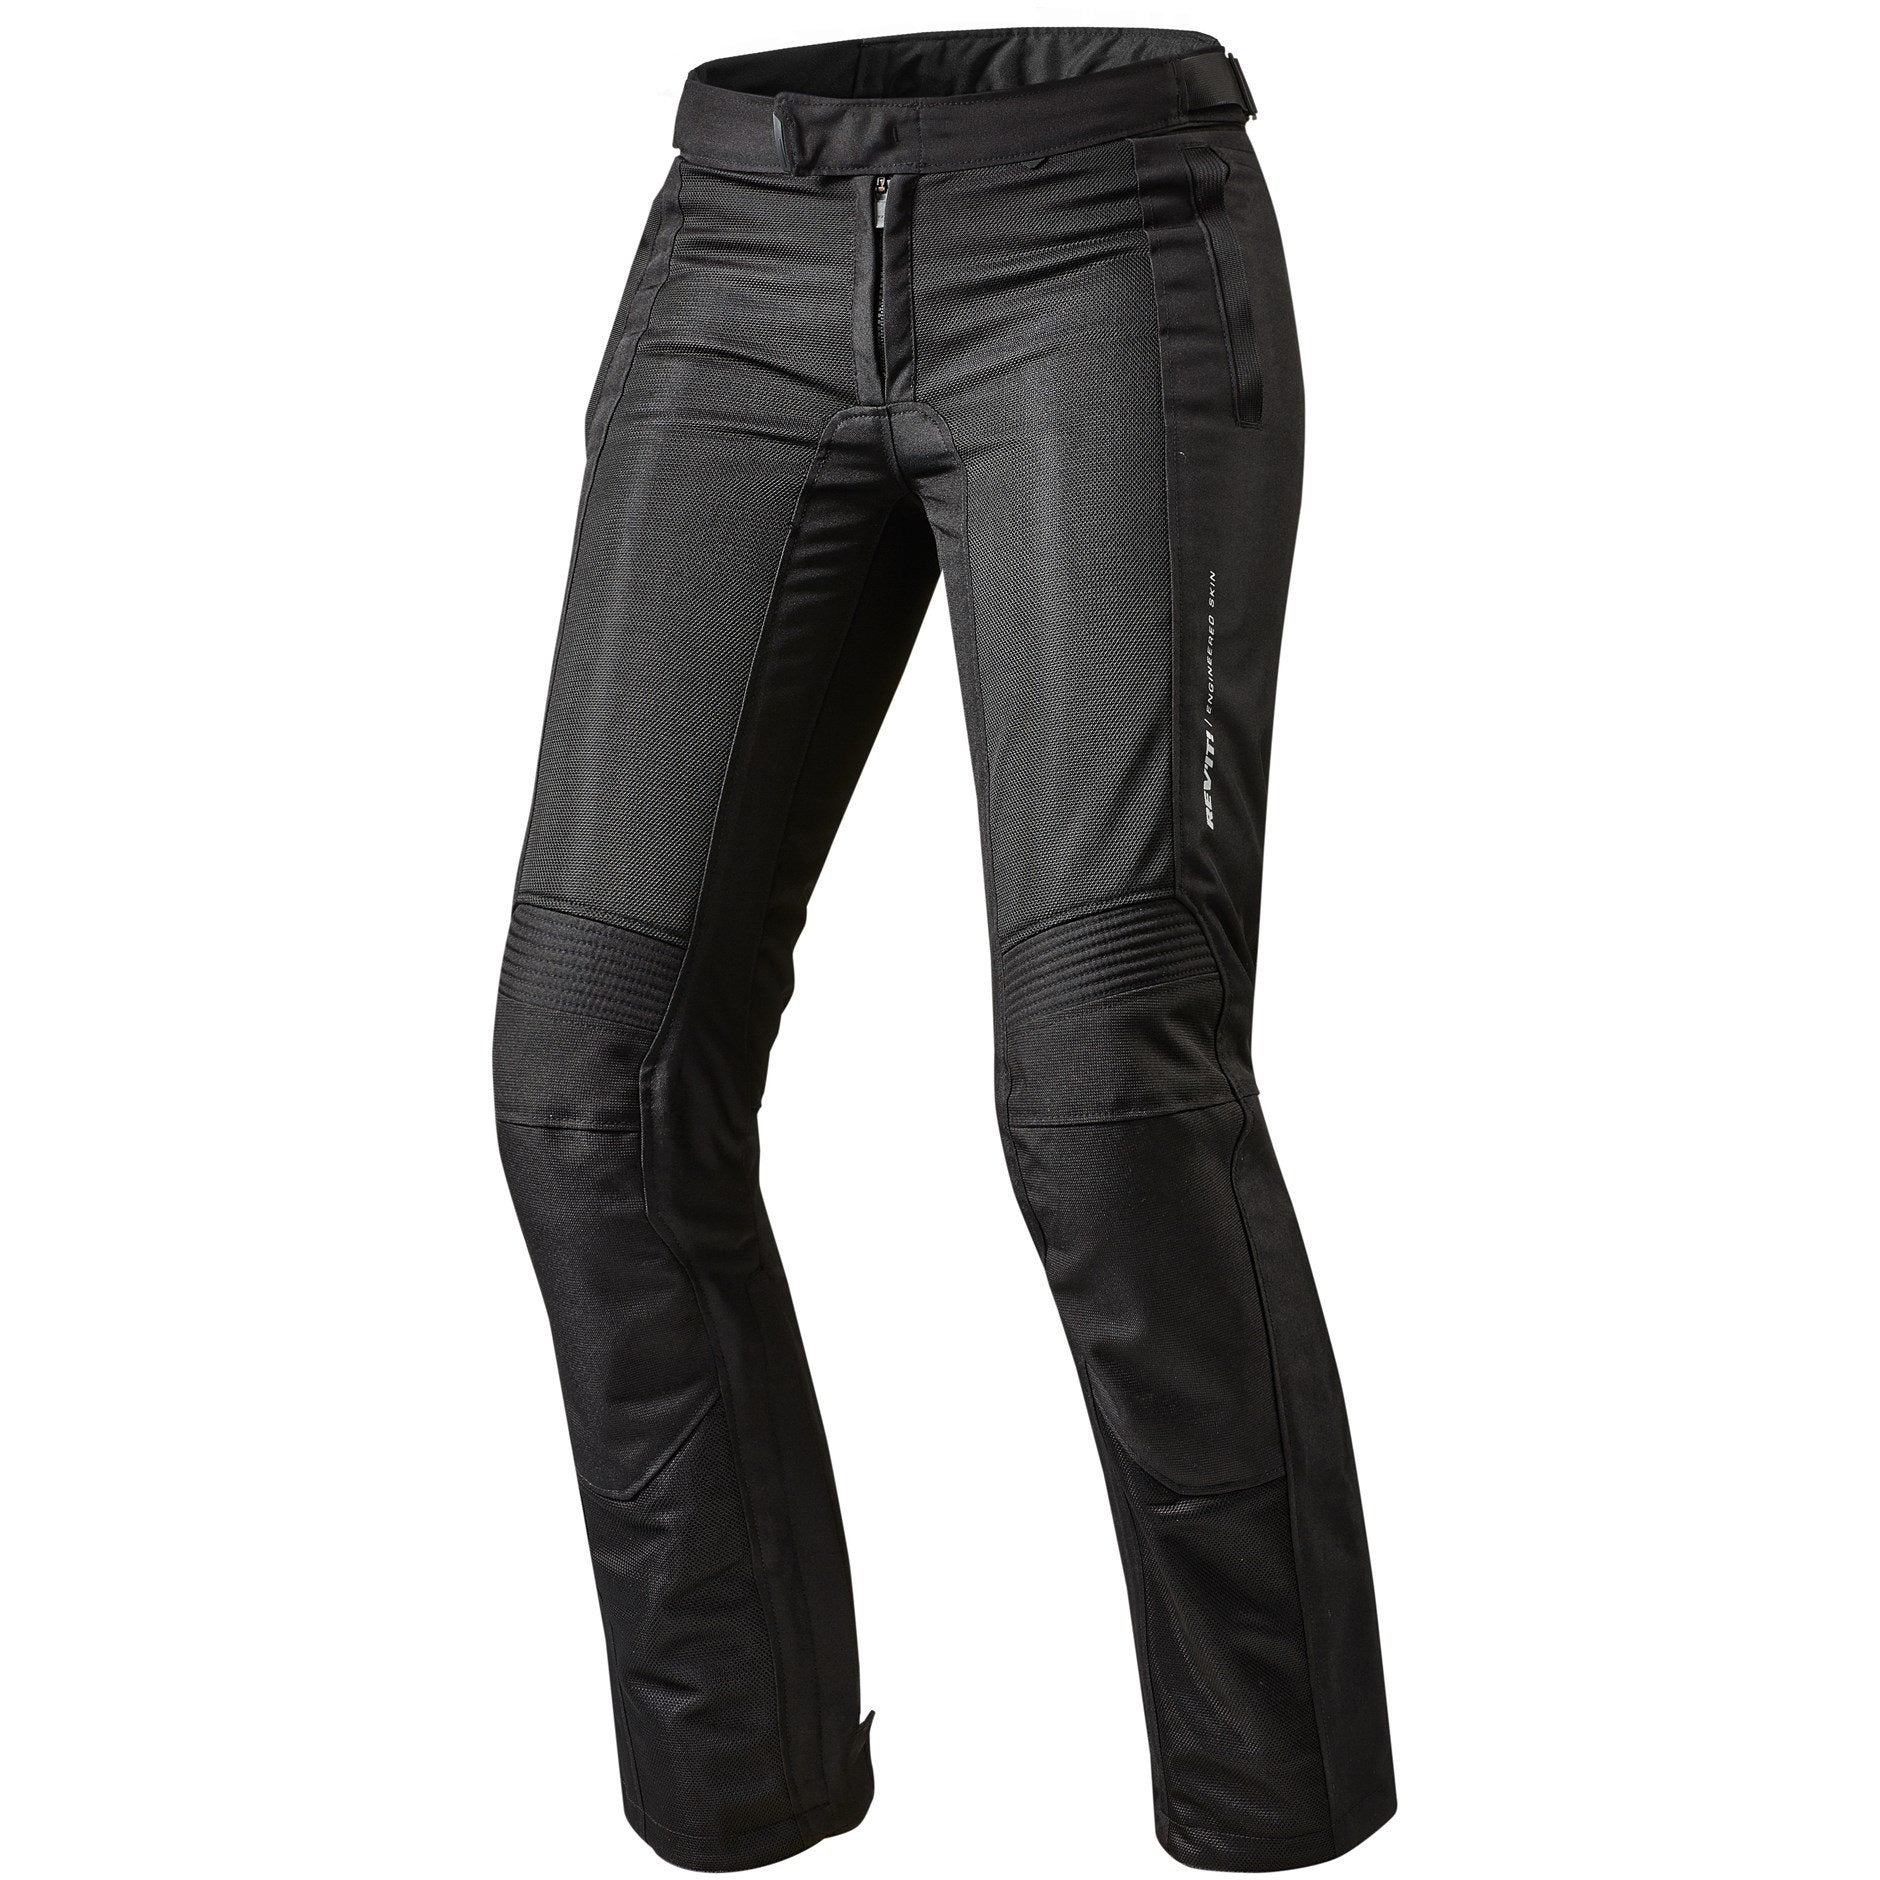 PANTALÓN REVIT AIRWAVE 2 LADIES BLACK STAND